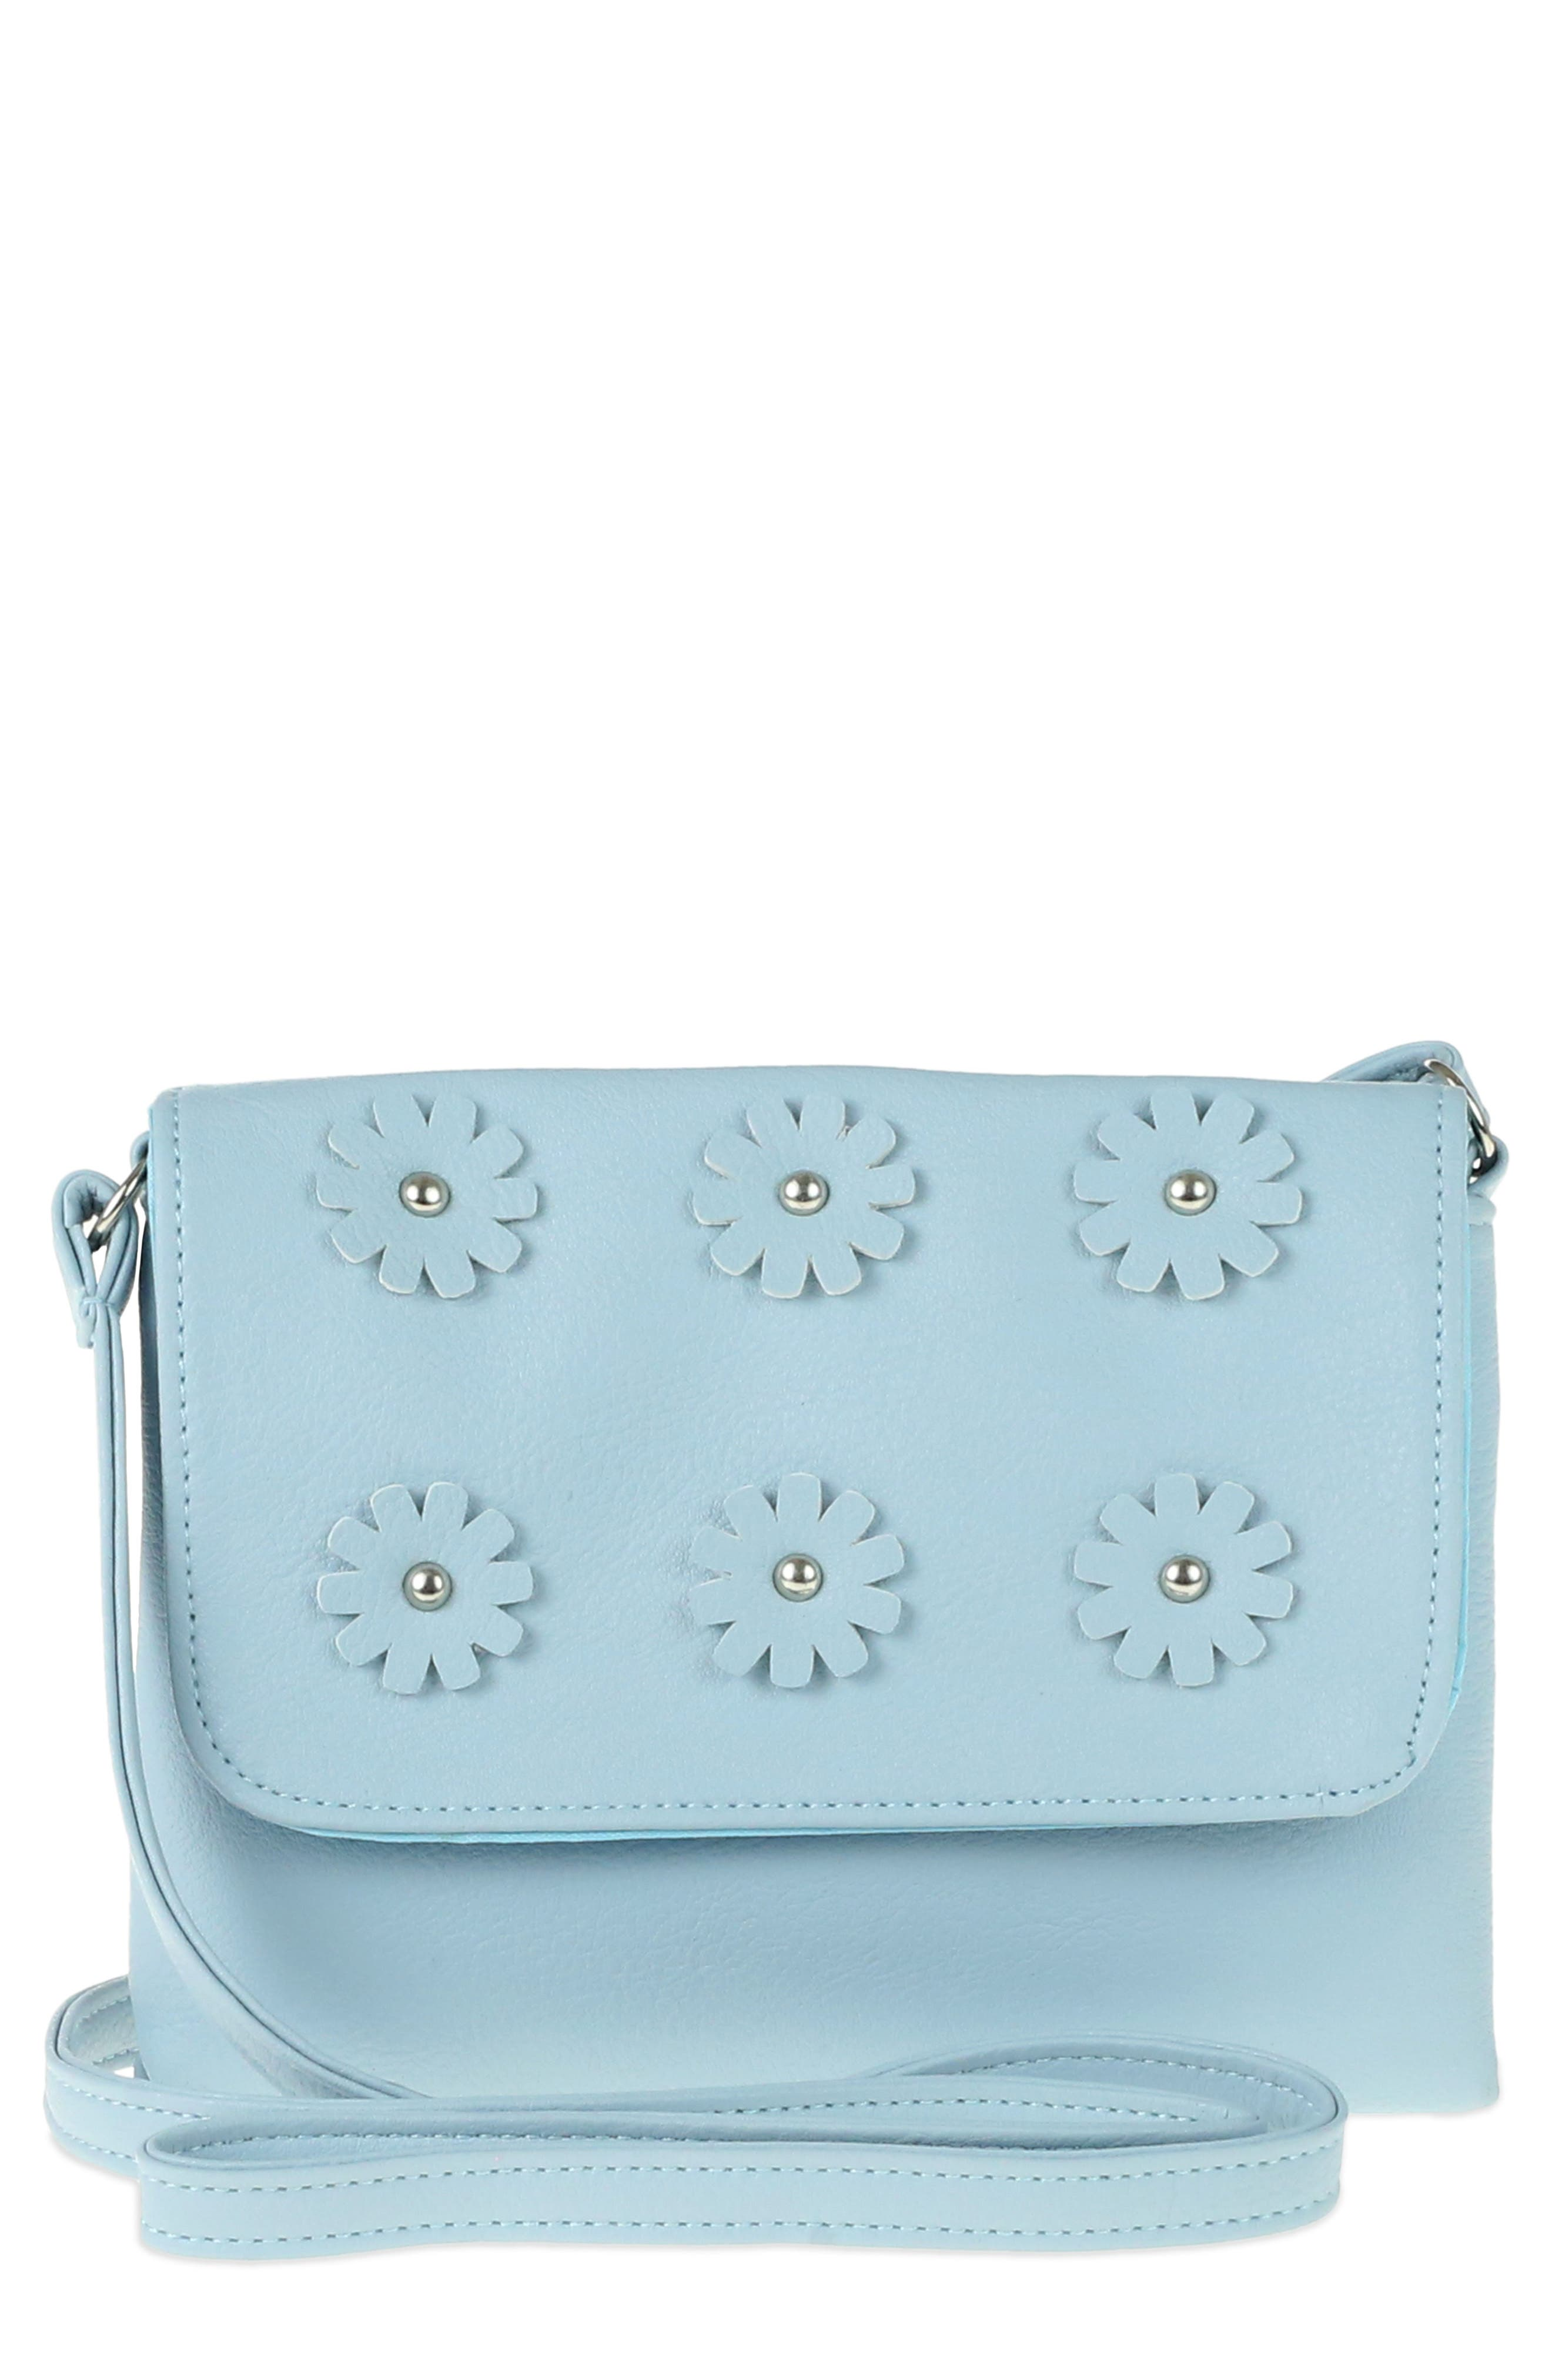 3D Flower Embellished Crossbody Bag,                             Main thumbnail 1, color,                             Light Blue